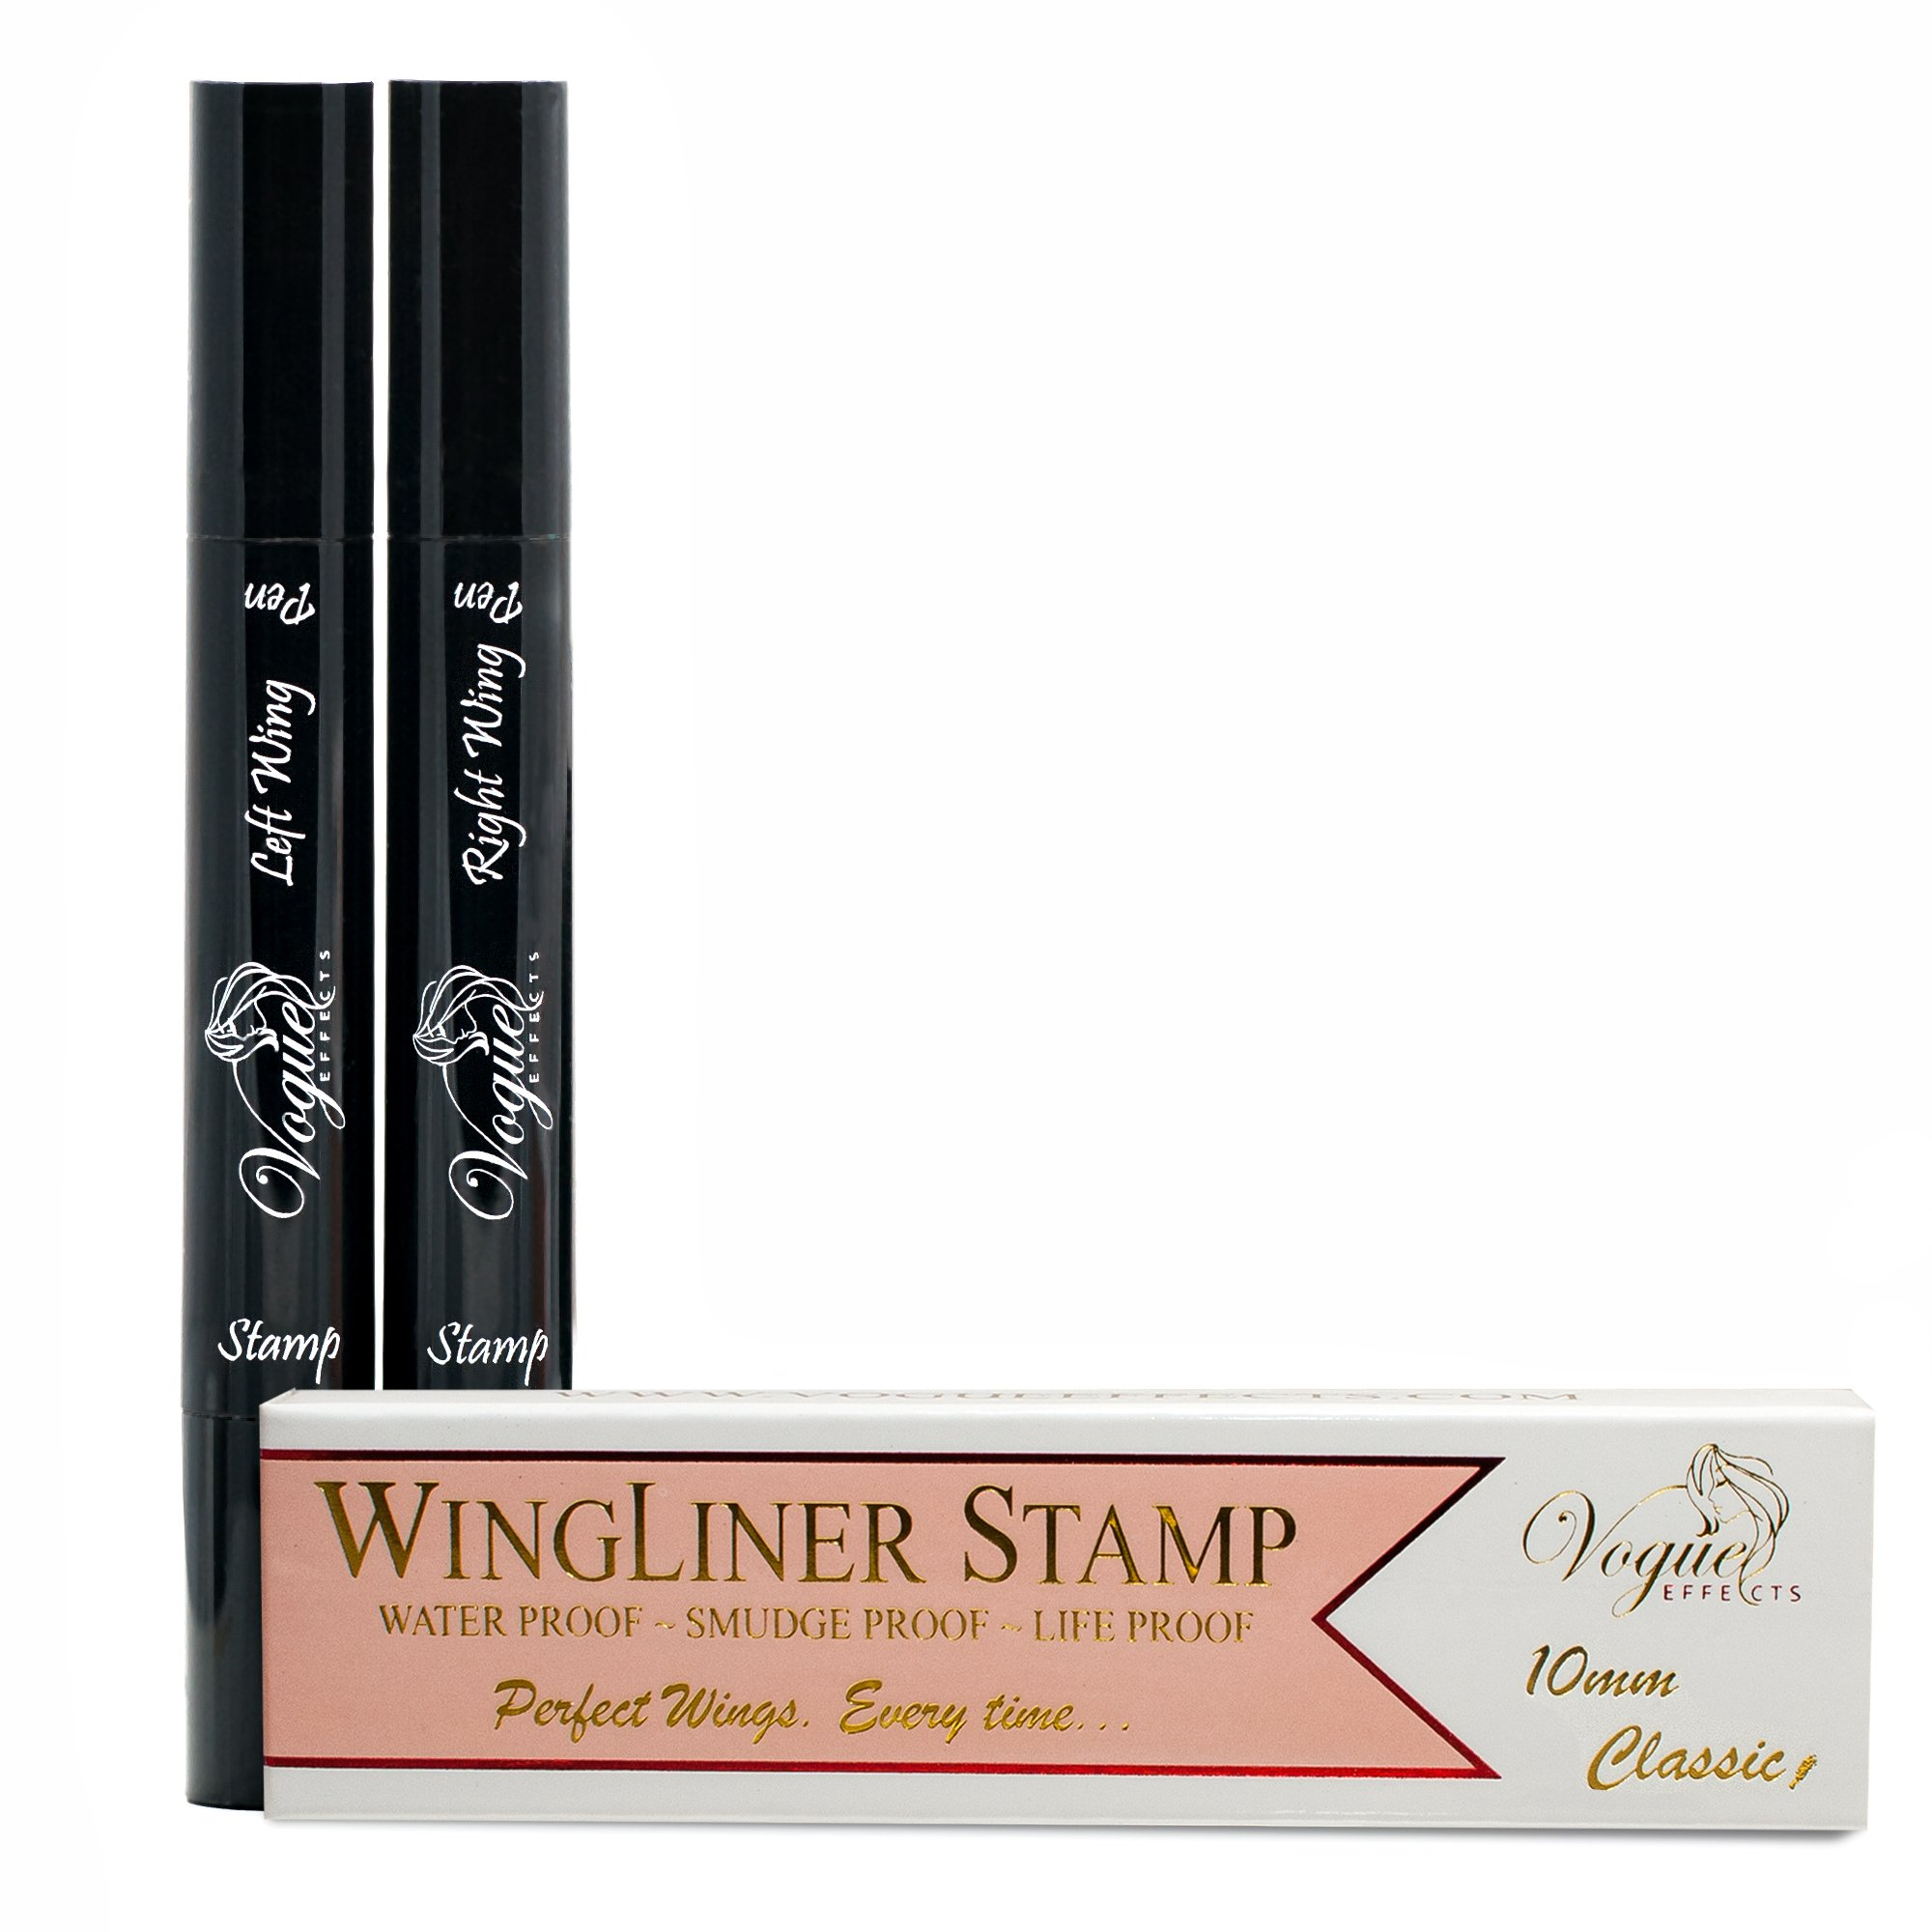 Eyeliner Stamp – WingLiner by Lovoir / Vogue Effects Black, waterproof, smudgeproof, winged long lasting liquid eye liner pen, Vamp style wing, No Dipping required. 2 Pens (10mm Classic) by Vogue Effects (Image #6)